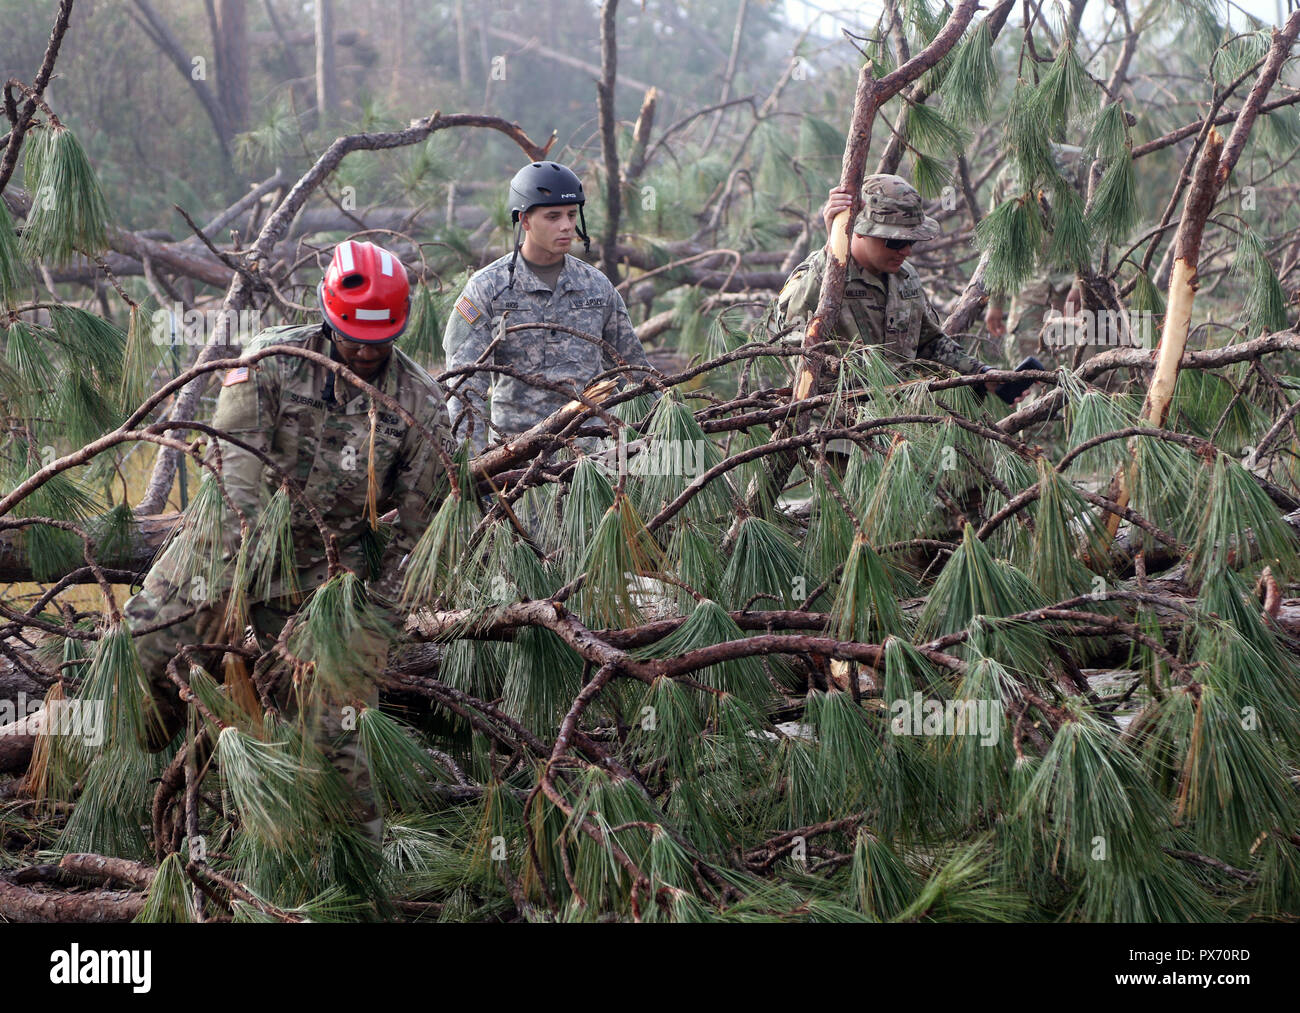 Florida National Guardsmen navigate downed trees to check on residents in the aftermath of Hurricane Michael as the storm left a swath of destruction across the Panhandle region of Florida area October 16, 2018 in Port St. Joe, Florida. The Category 4 monster storm left behind catastrophic damage along northwestern Florida. - Stock Image